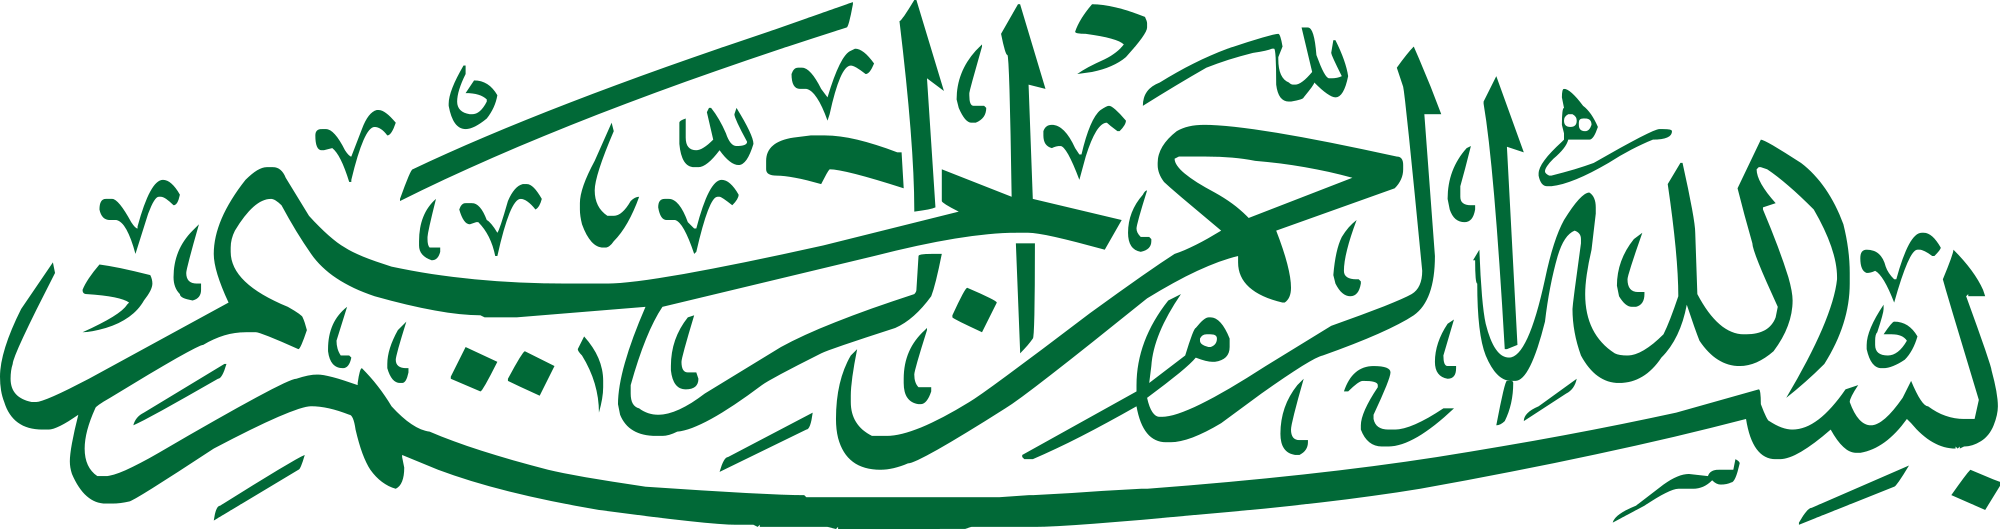 Urdu Calligraphy Font Free Download Bismillah Vector Urdu Transparent Png Clipart Free Download Ya